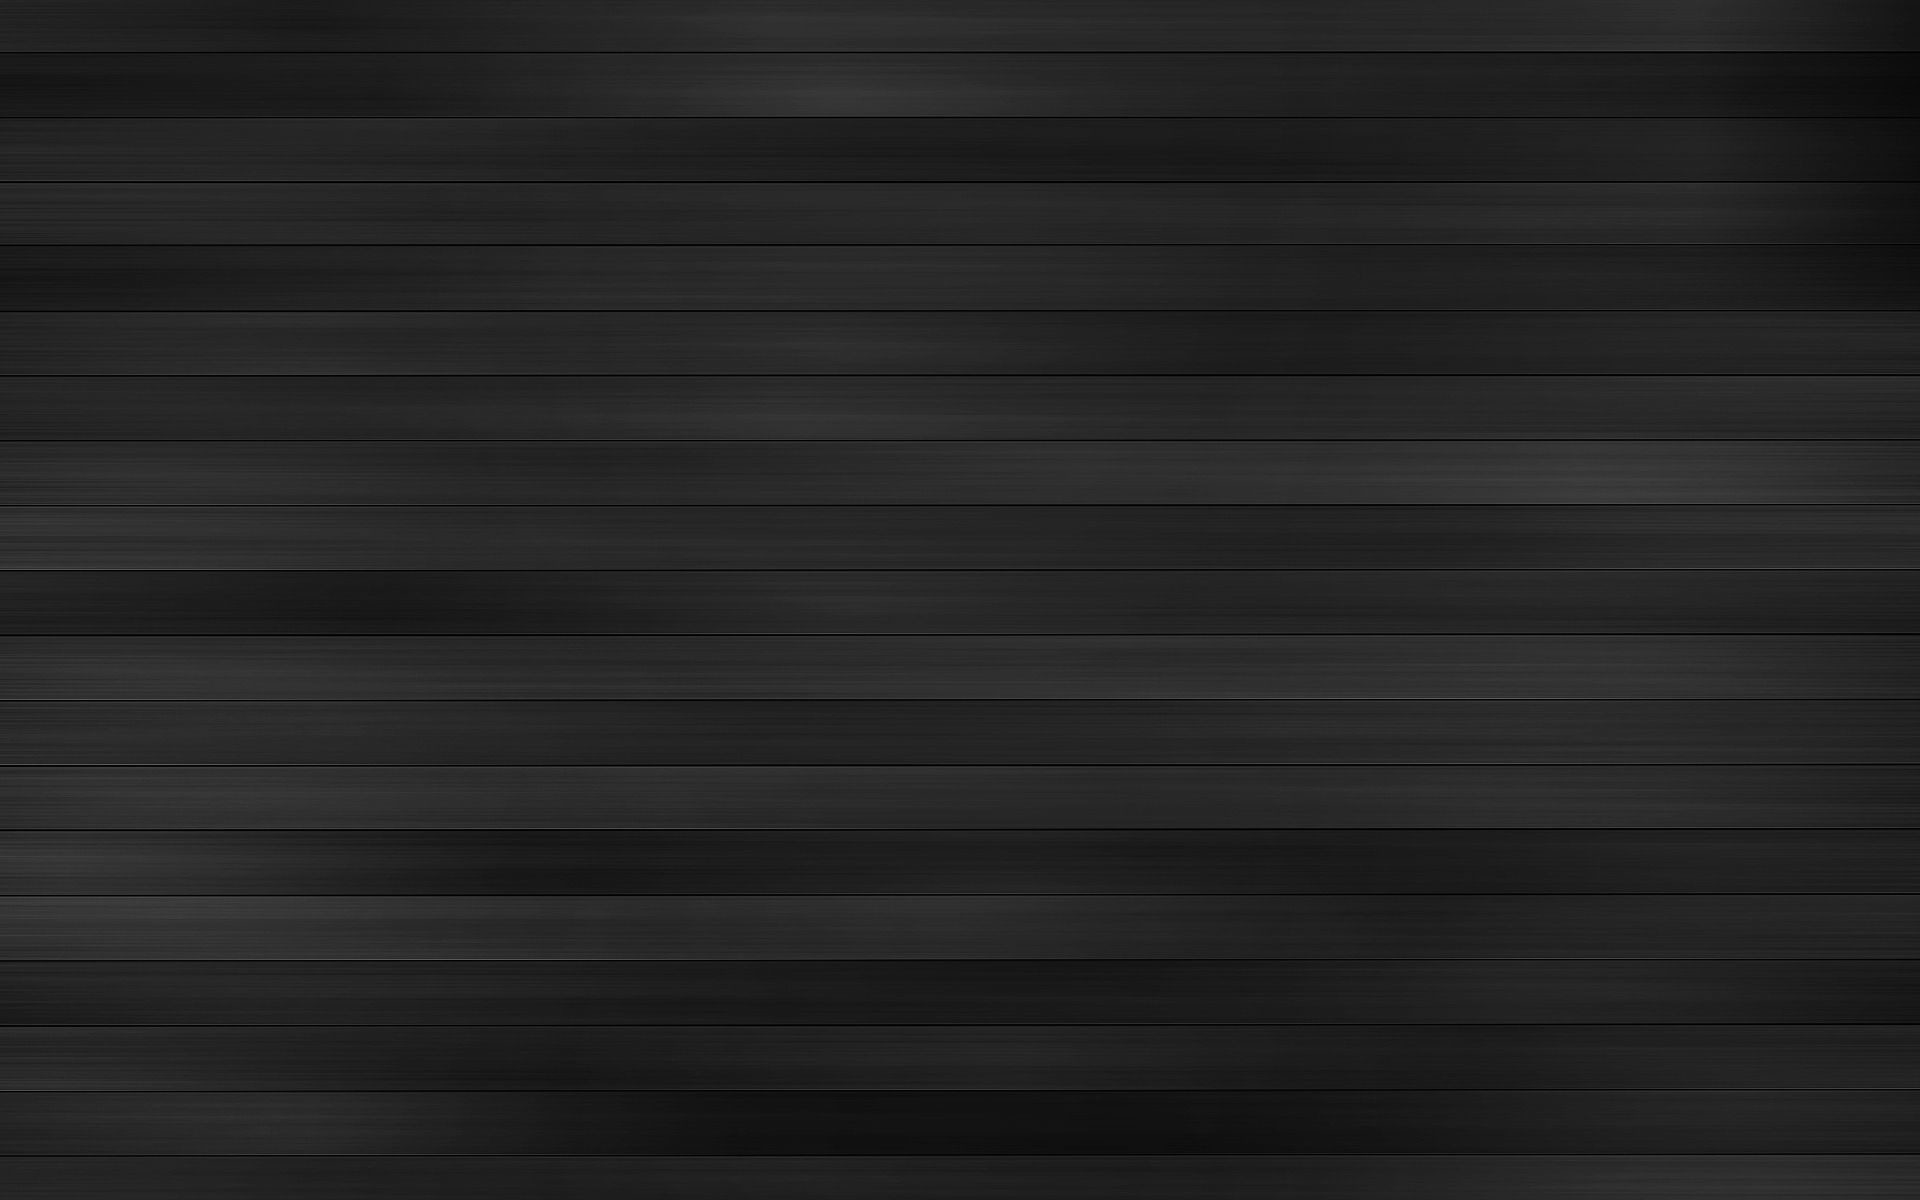 Grey Background Wallpaper | HD Wallpapers | Pinterest | Dark grey wallpaper,  Wallpaper and Dark